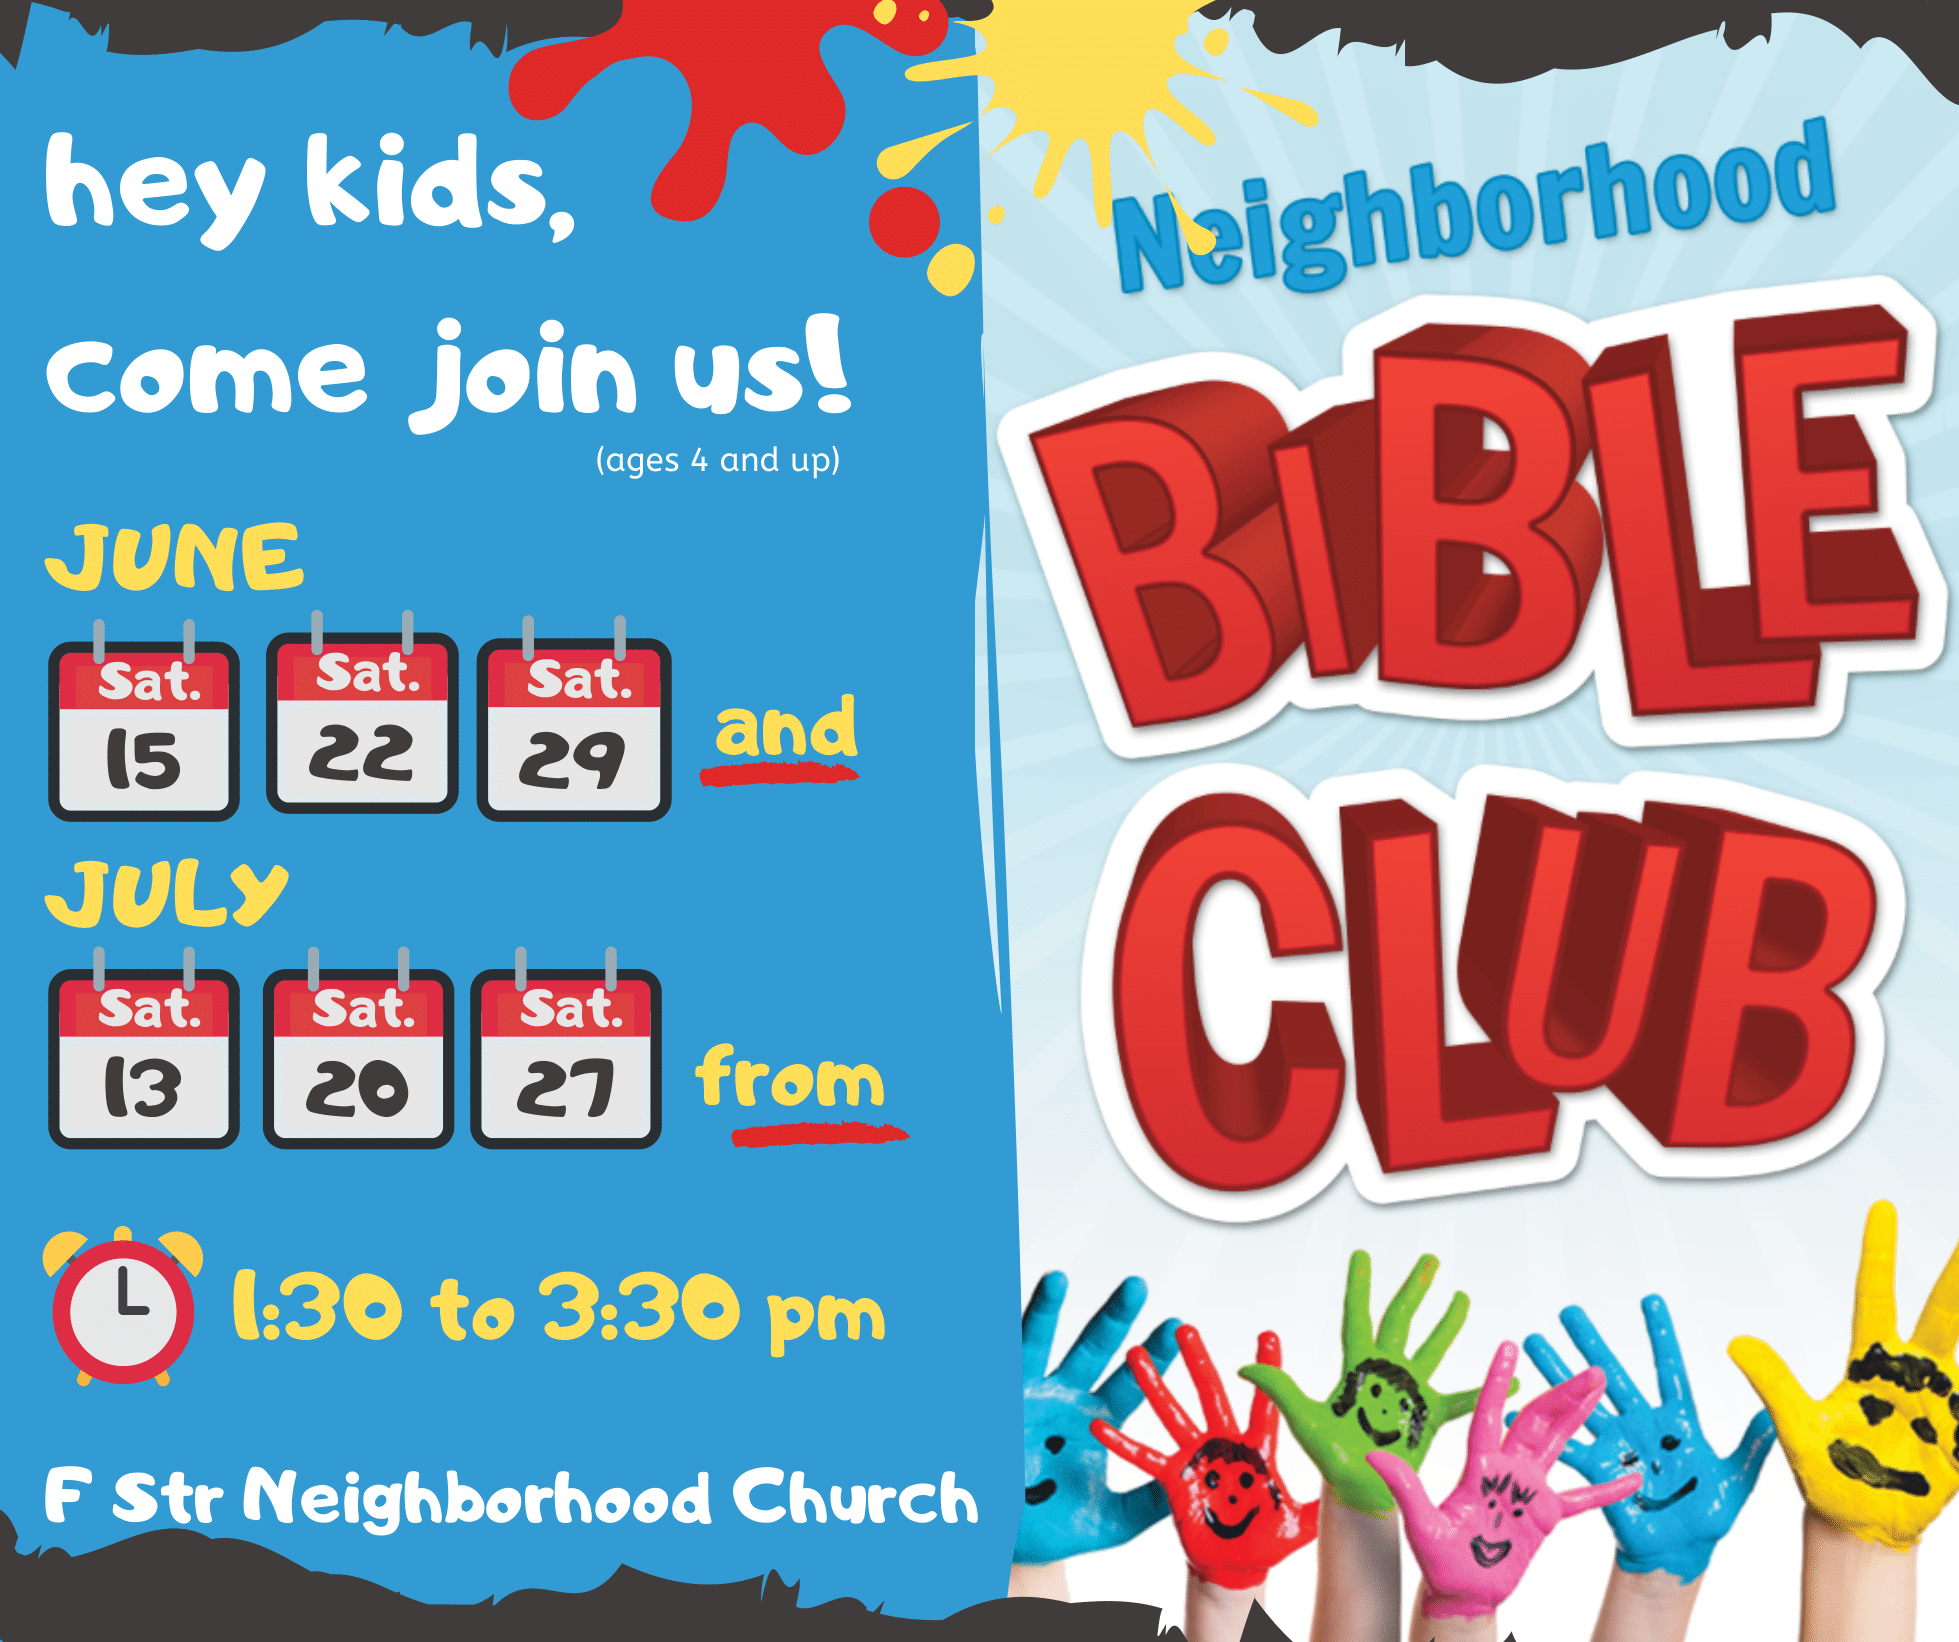 Kids 4 years old through 5th grade! Check out Neighborhood Bible club throughout the summer!